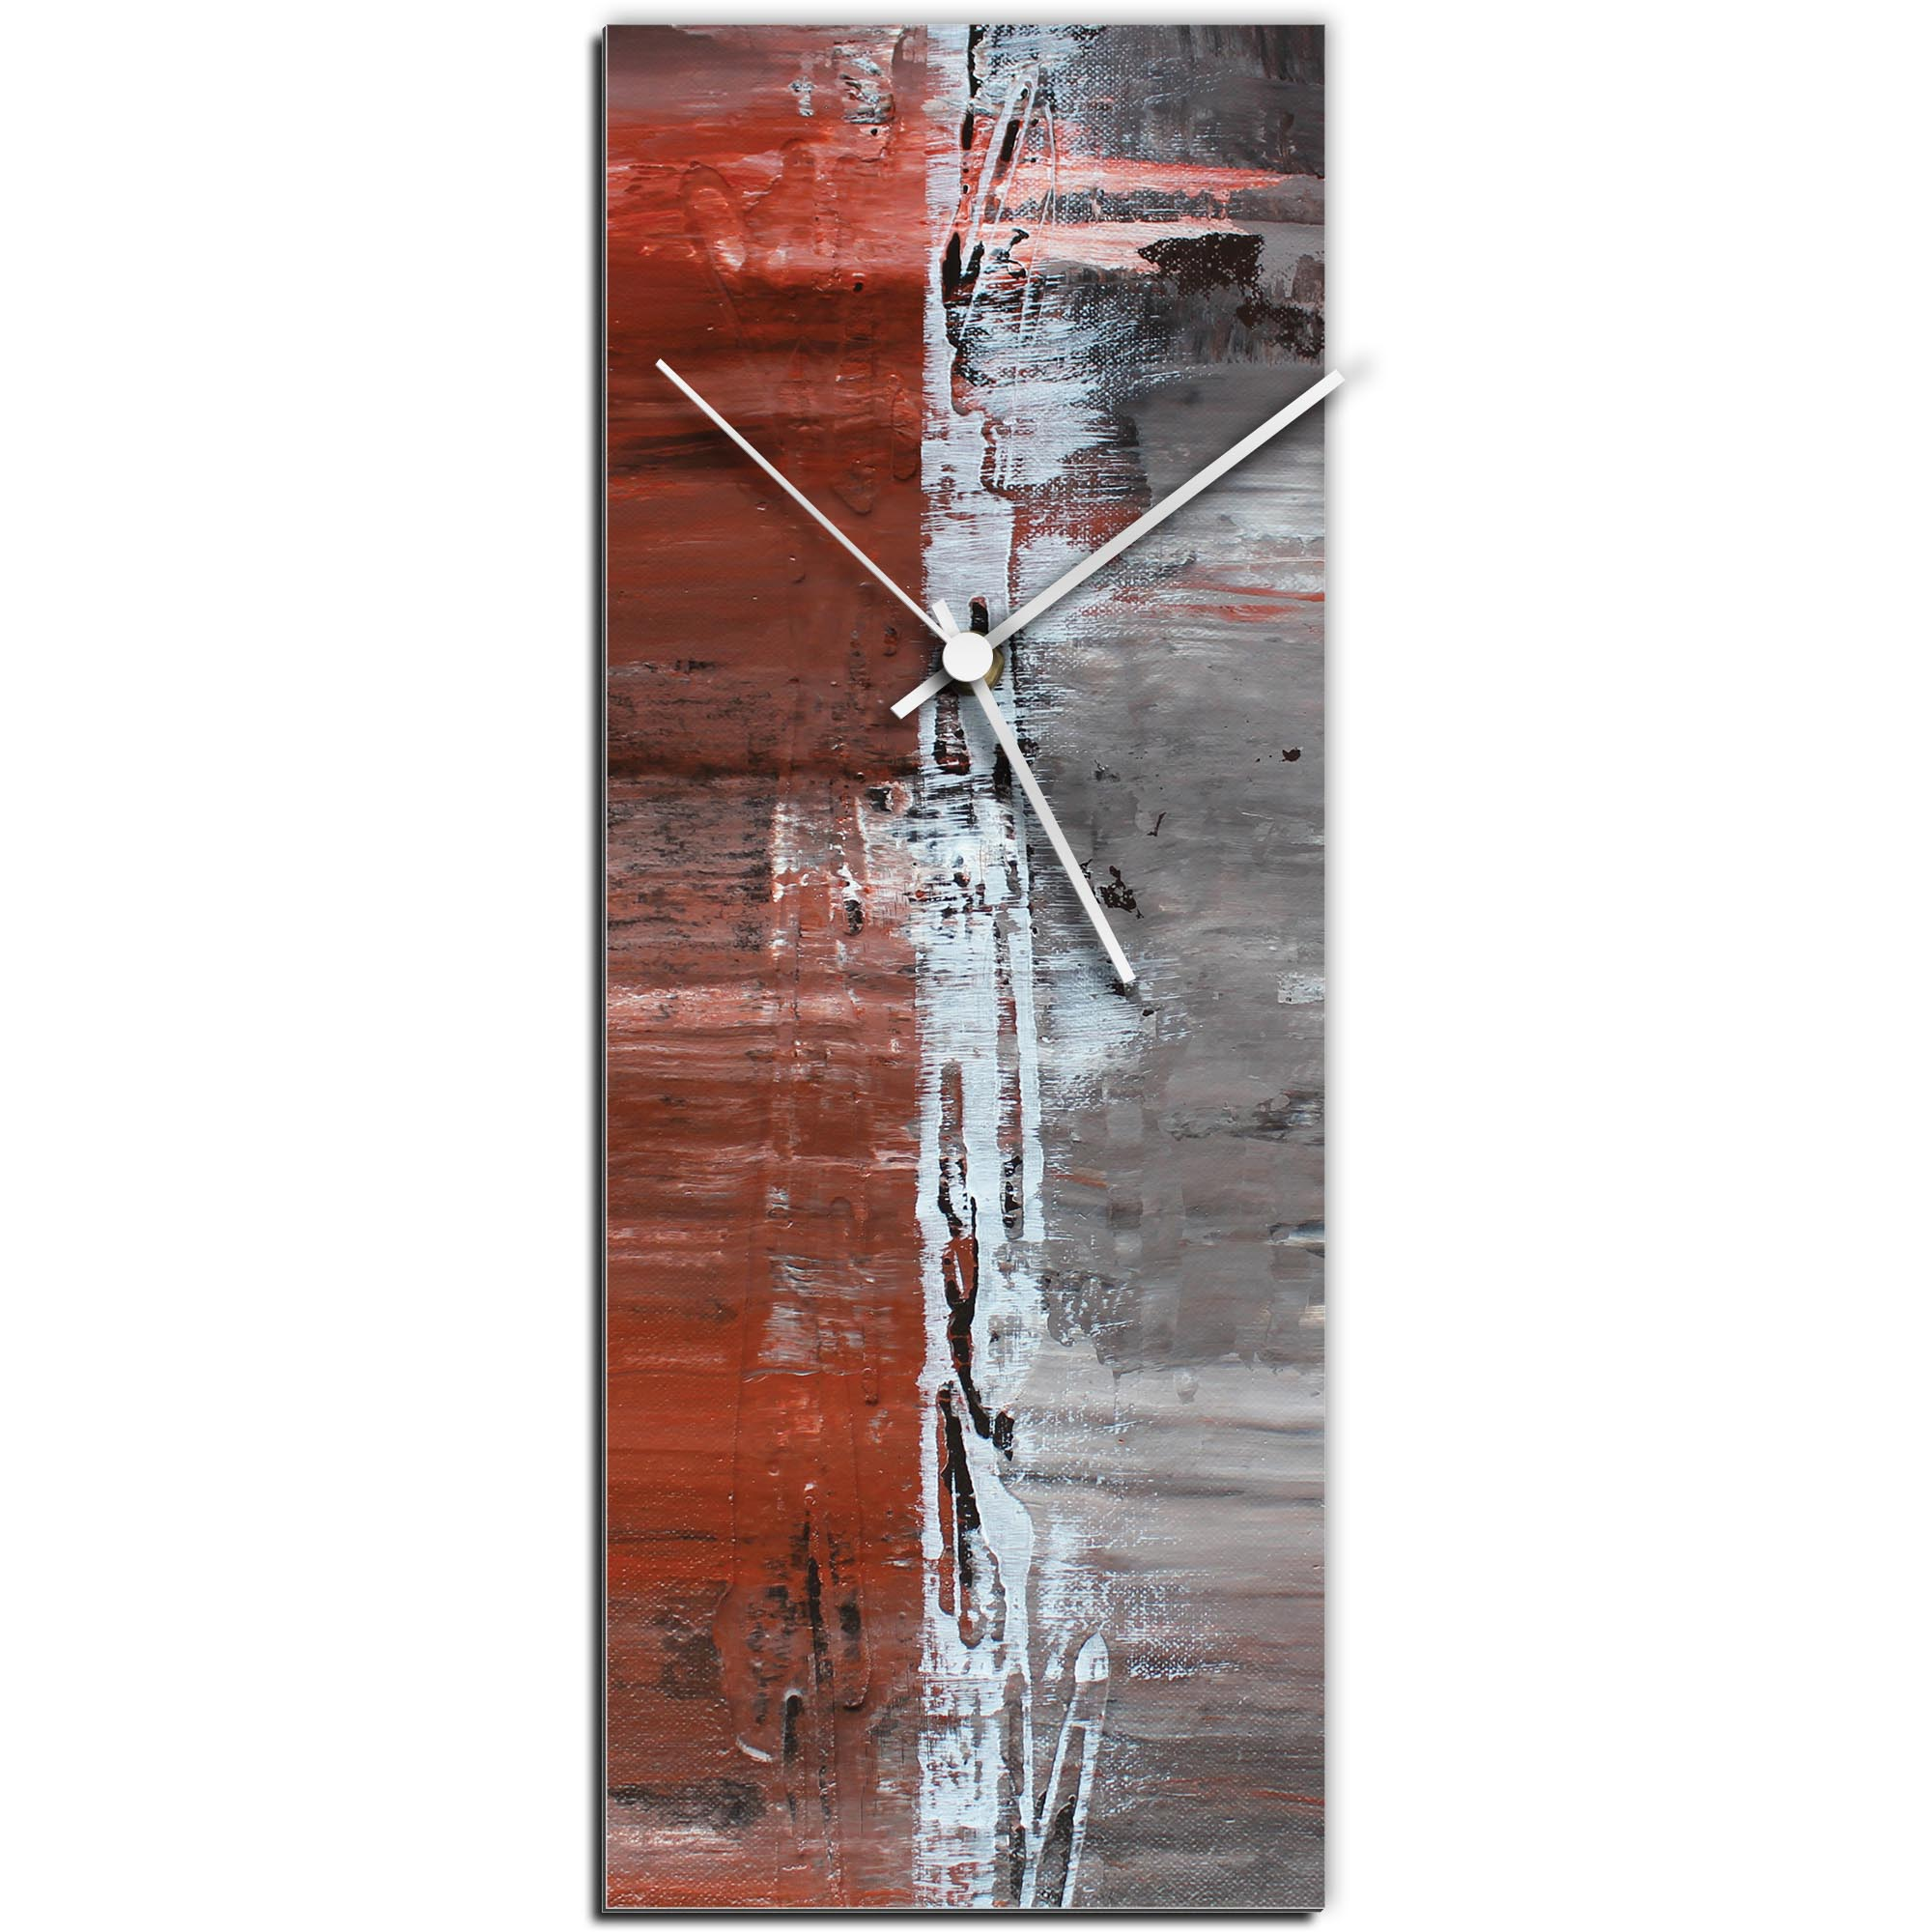 Mendo Vasilevski 'City Alley Clock' 6in x 16in Modern Wall Clock on Aluminum Composite